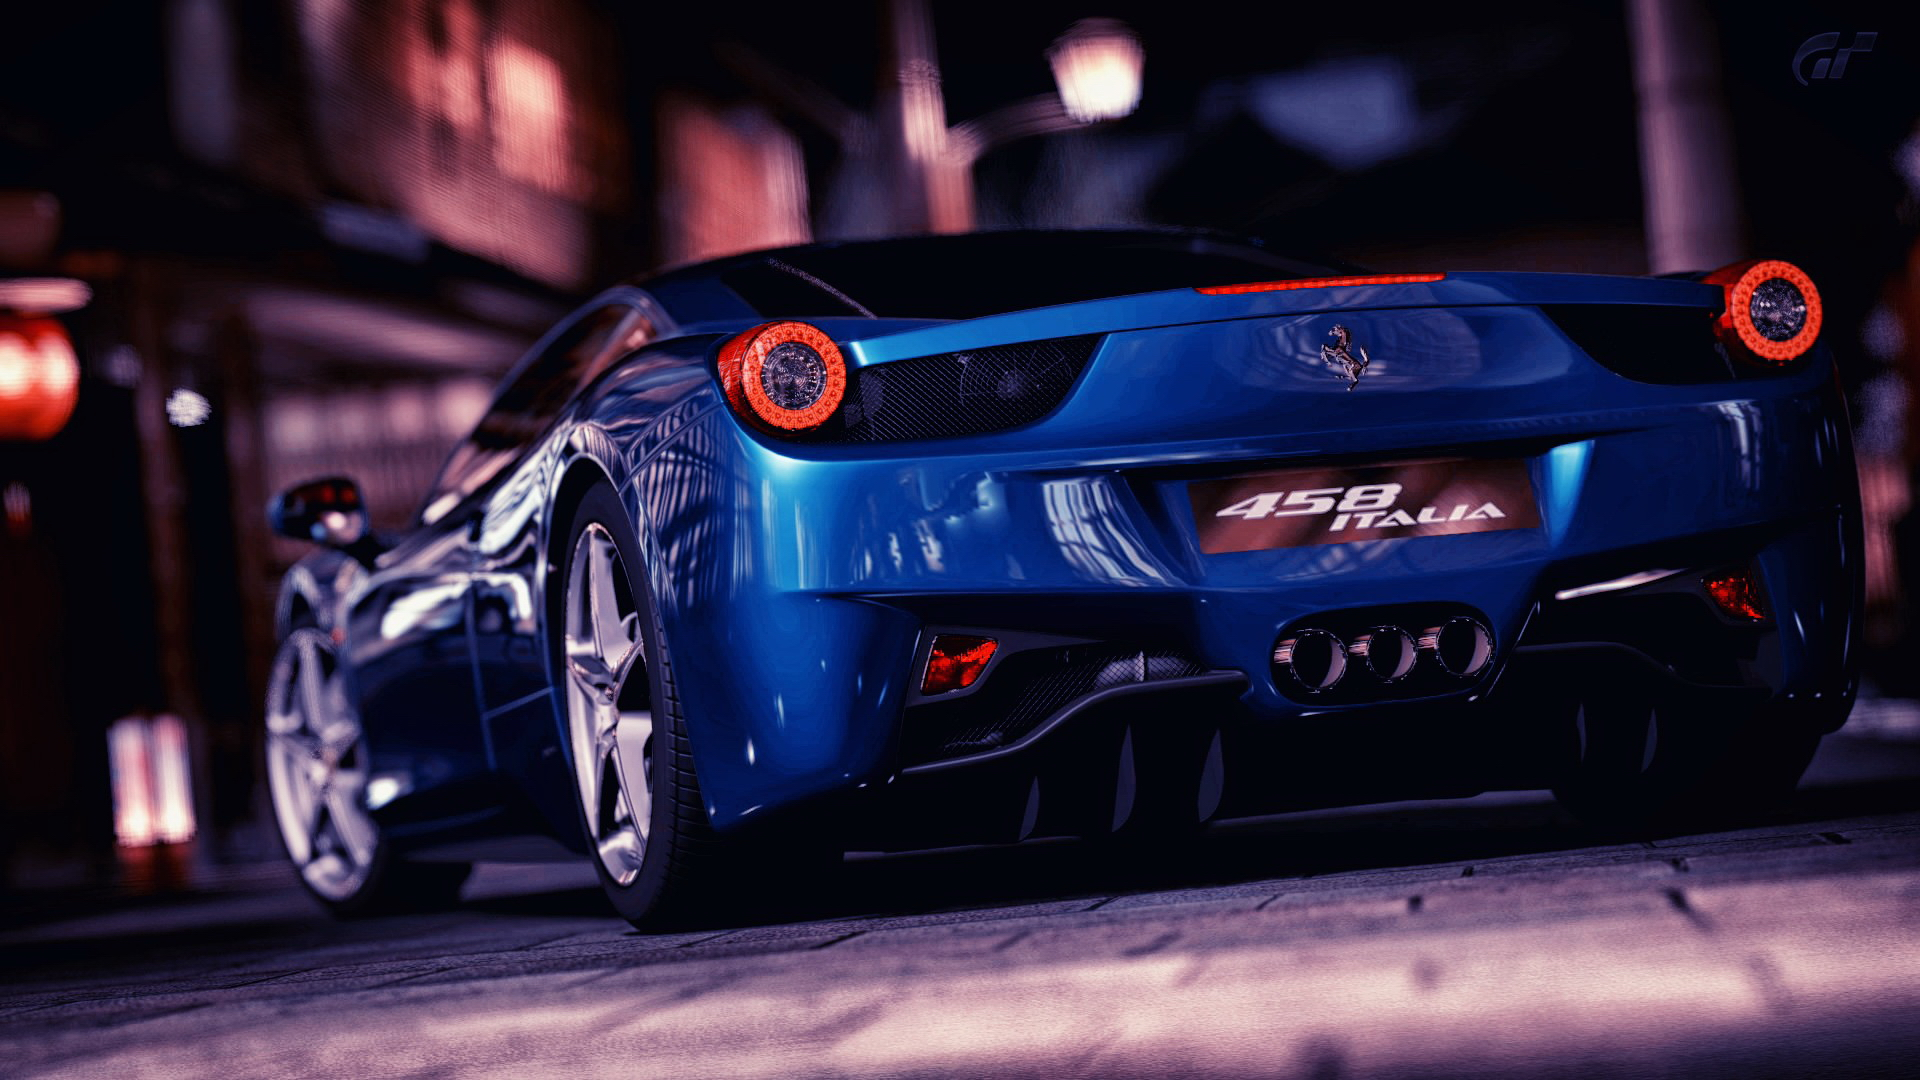 3d Wallpaper Hd For Laptop Of Cars